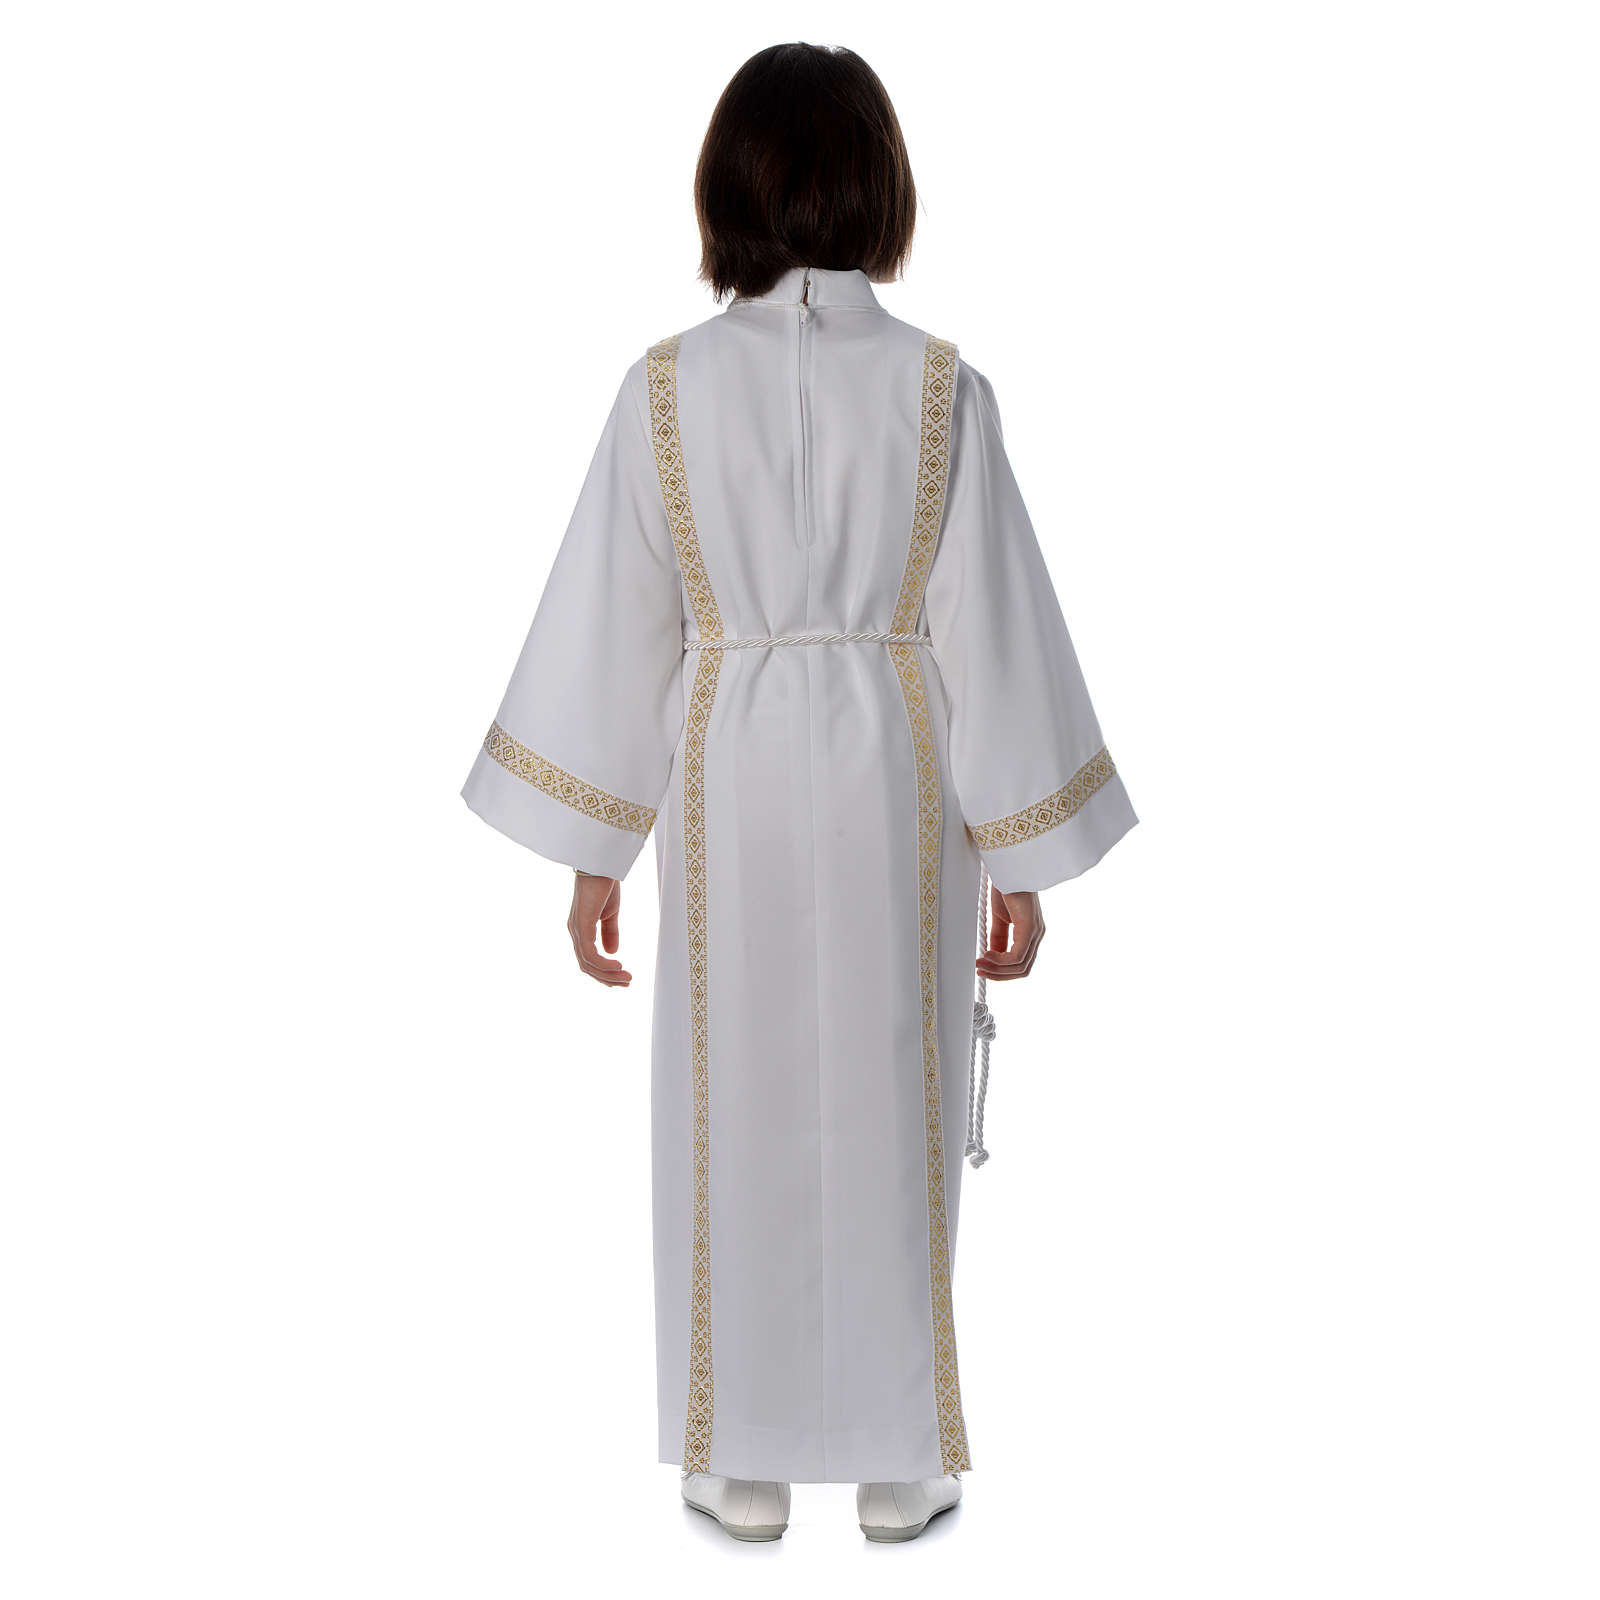 Holy Communion alb with pleats on back and front and braided border 4